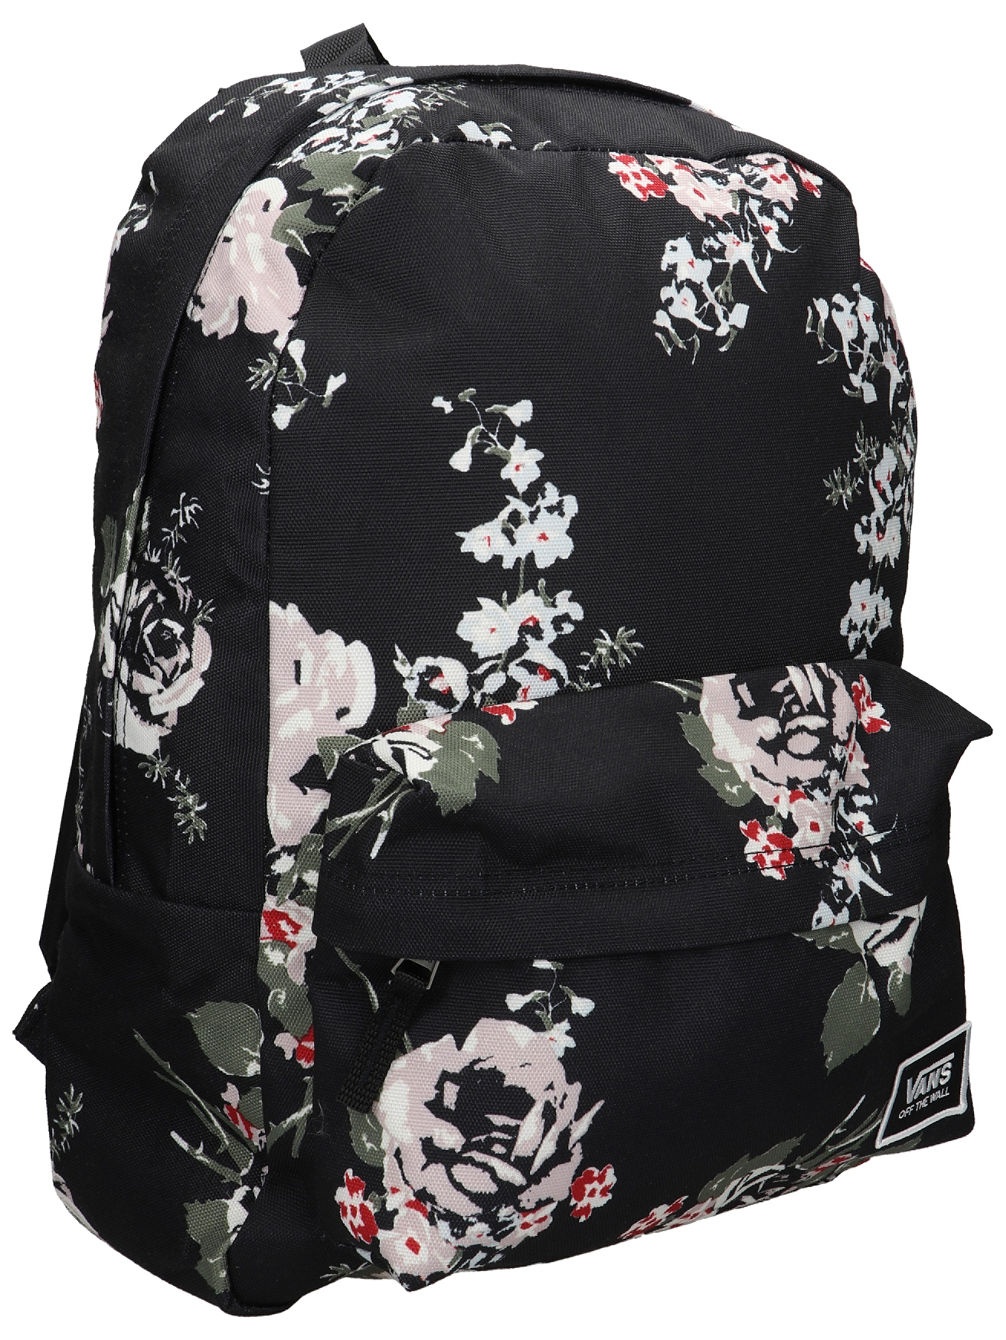 81a7f45dbdbfab Buy Vans Realm Classic Backpack online at Blue Tomato